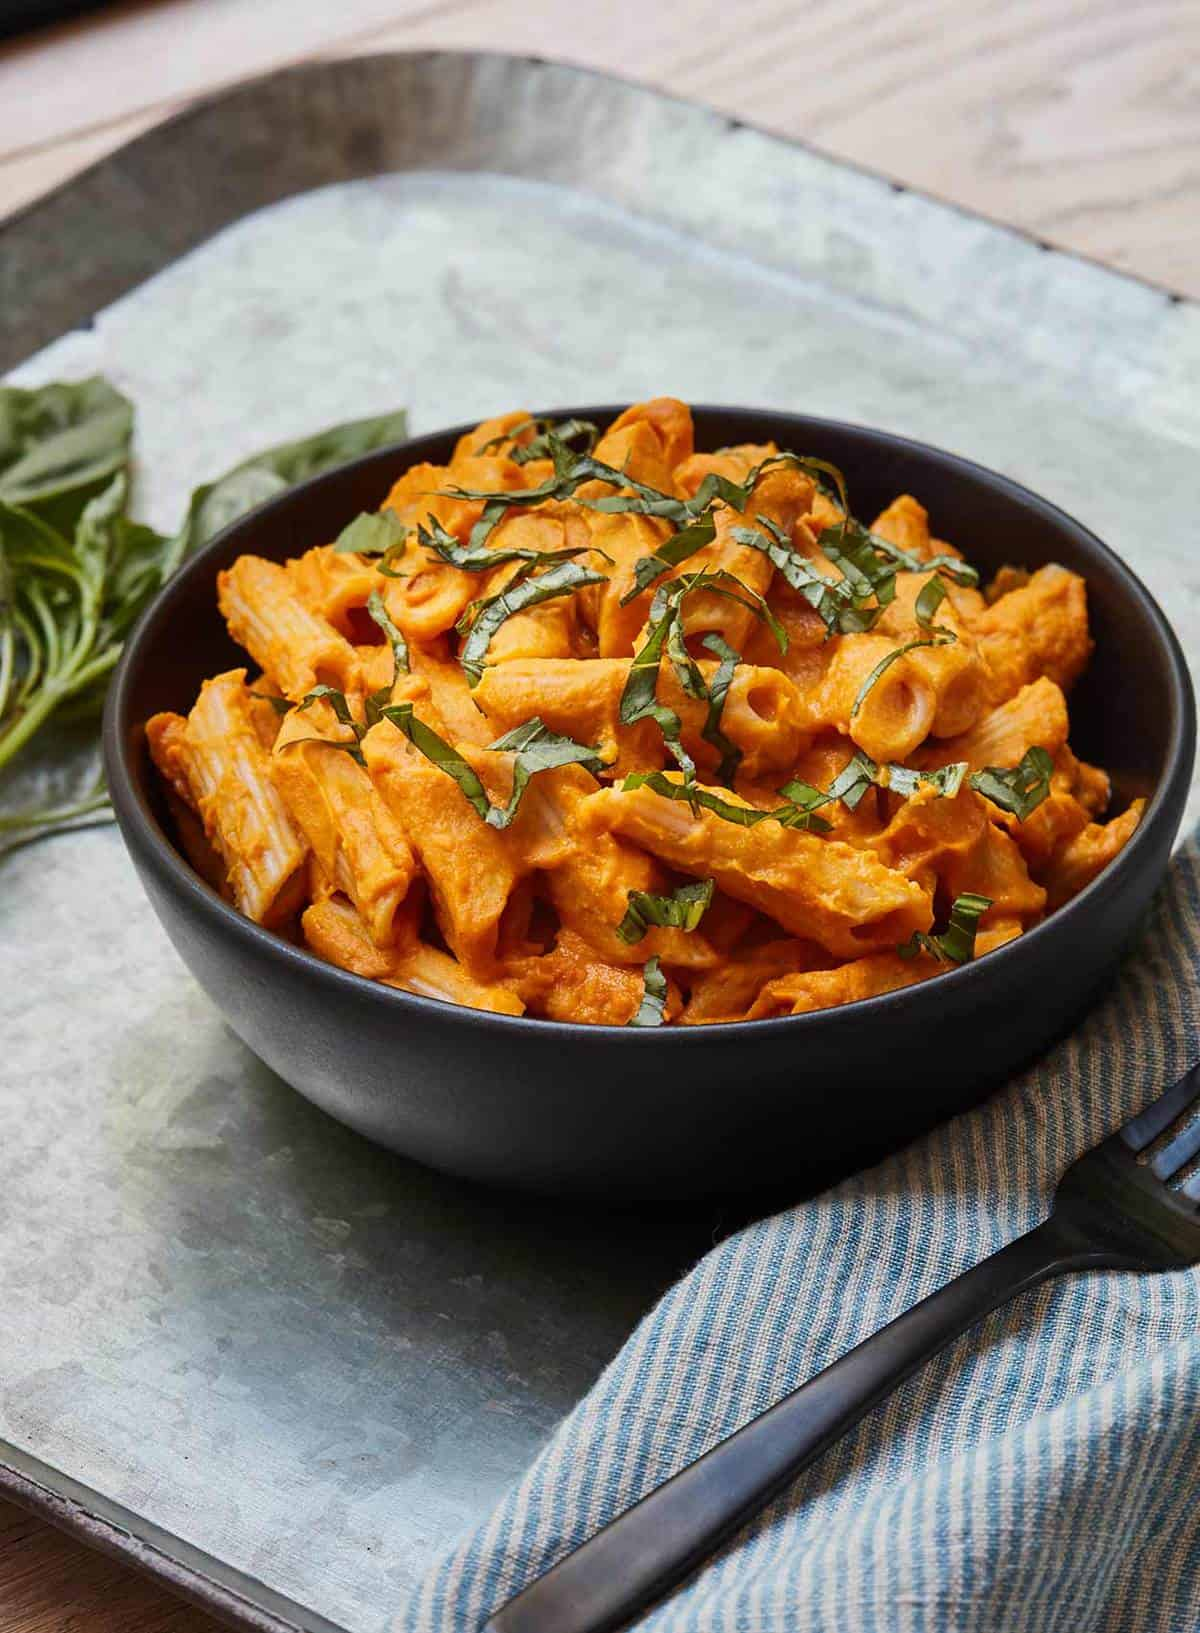 Butternut Squash Pasta served in black bowl on metal tray